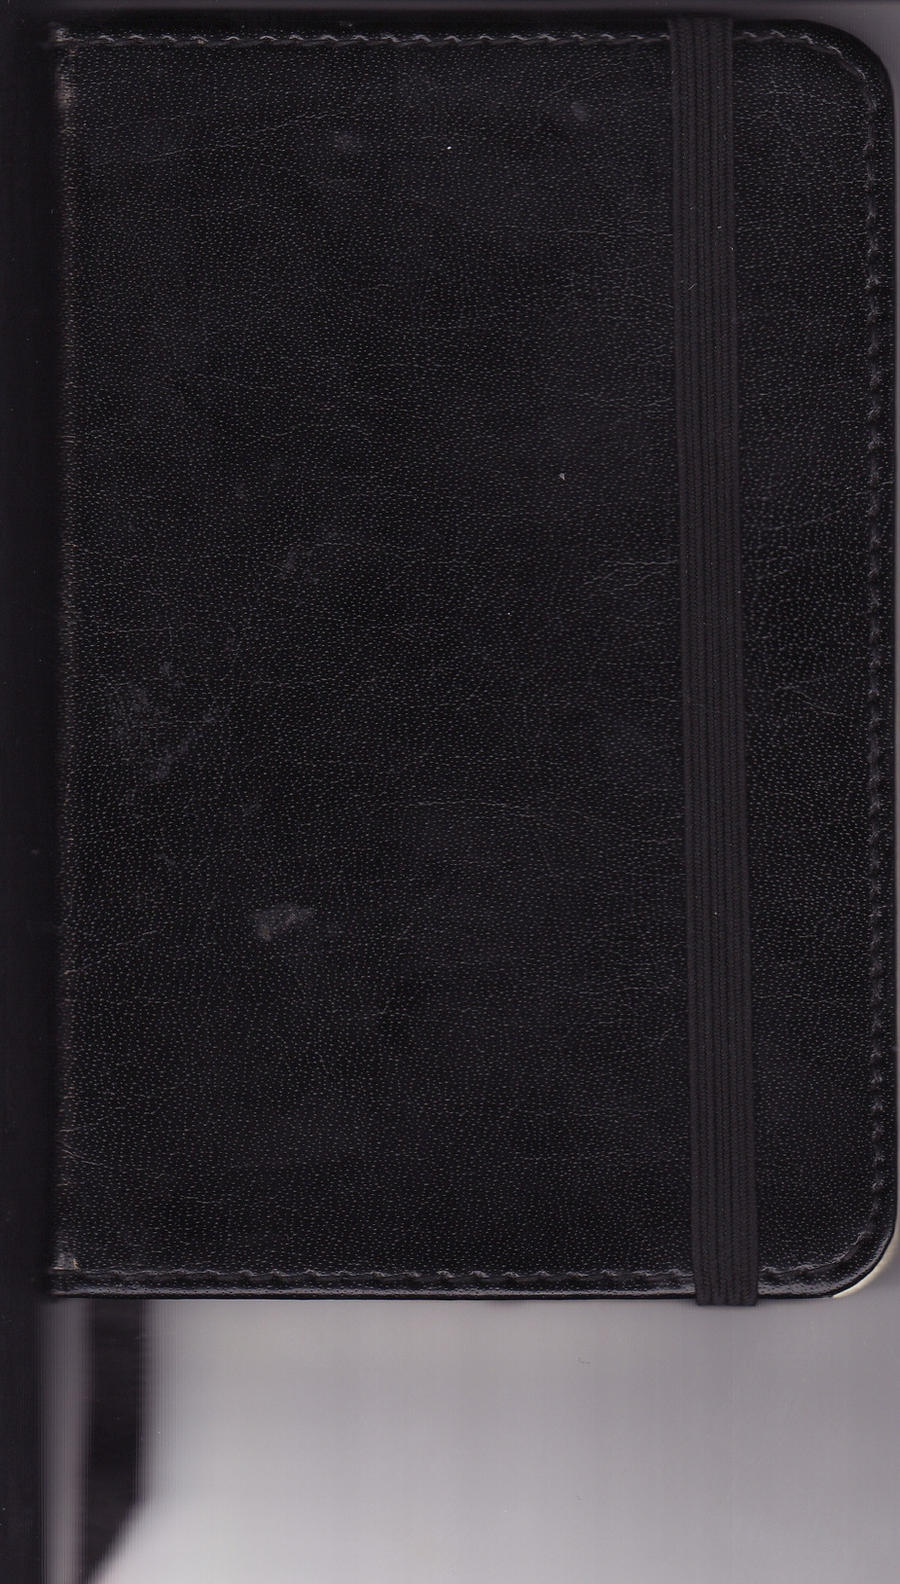 Book With A Black Cover ~ Black book cover by notshurly on deviantart